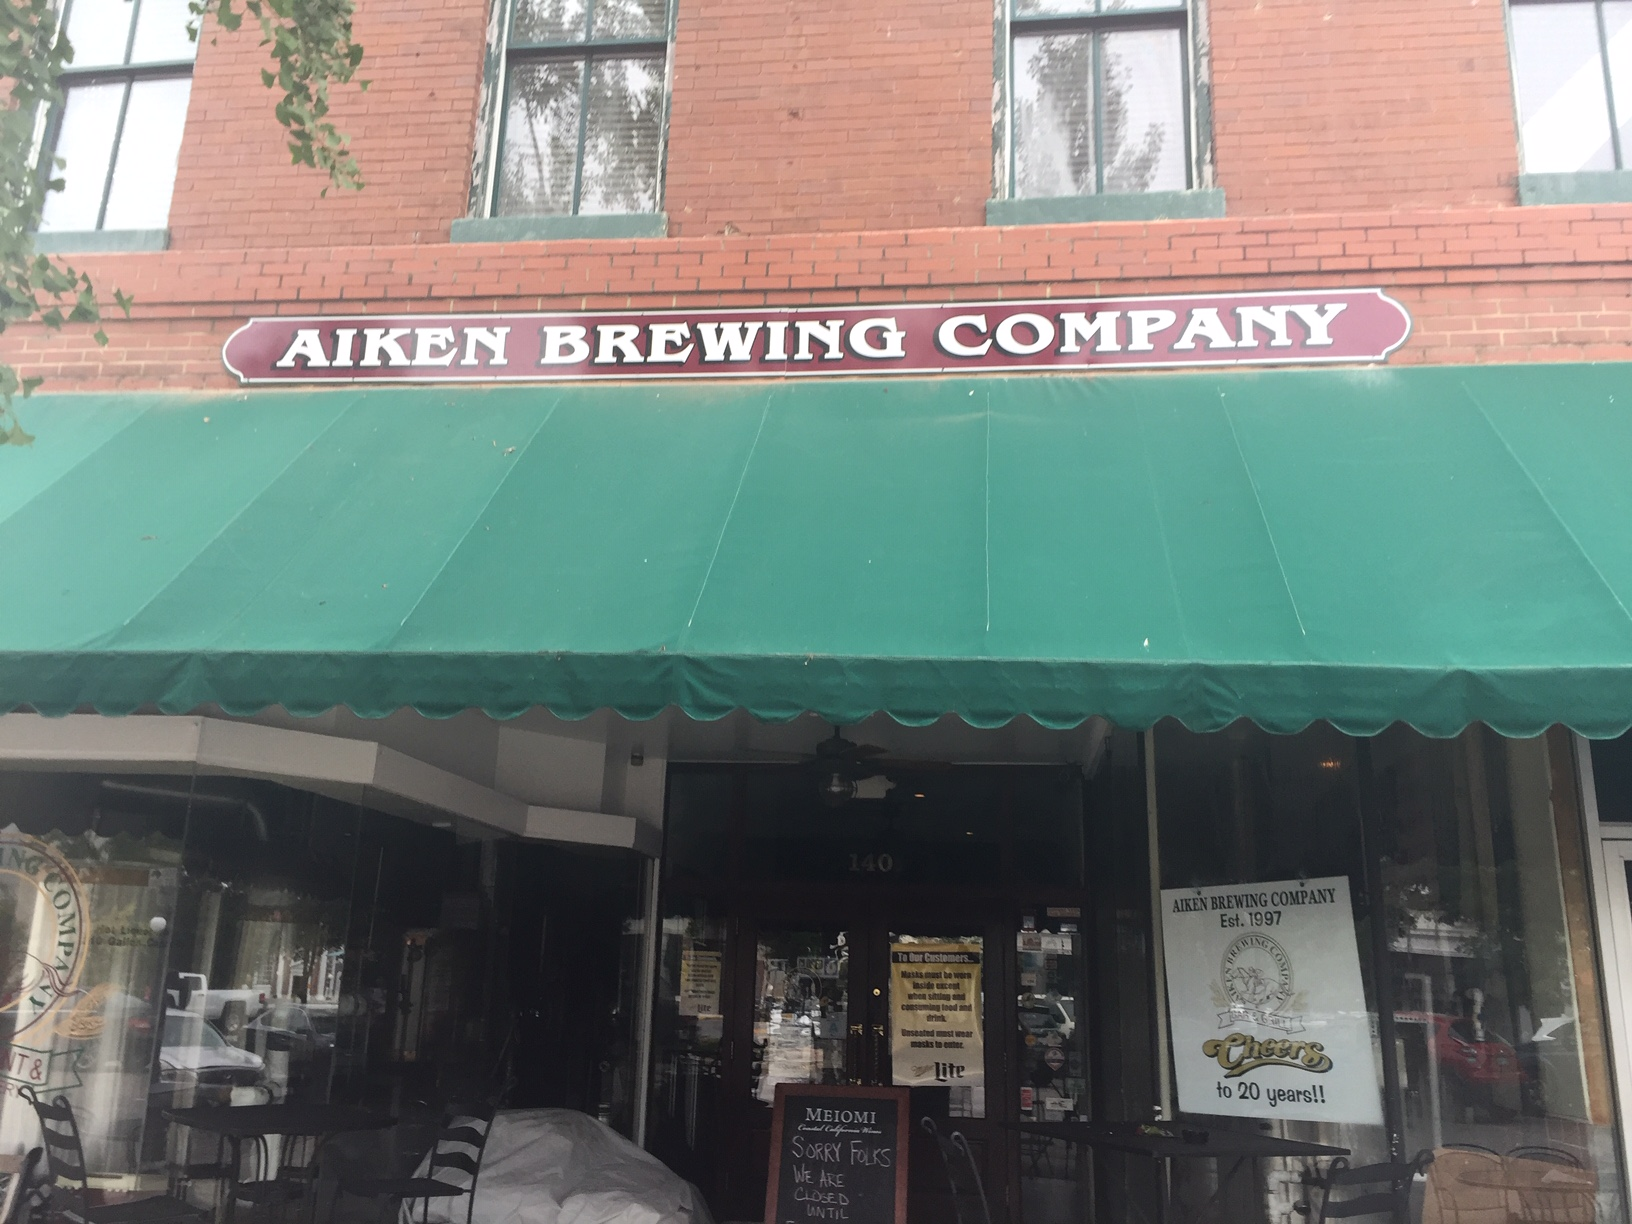 Aiken Brewing